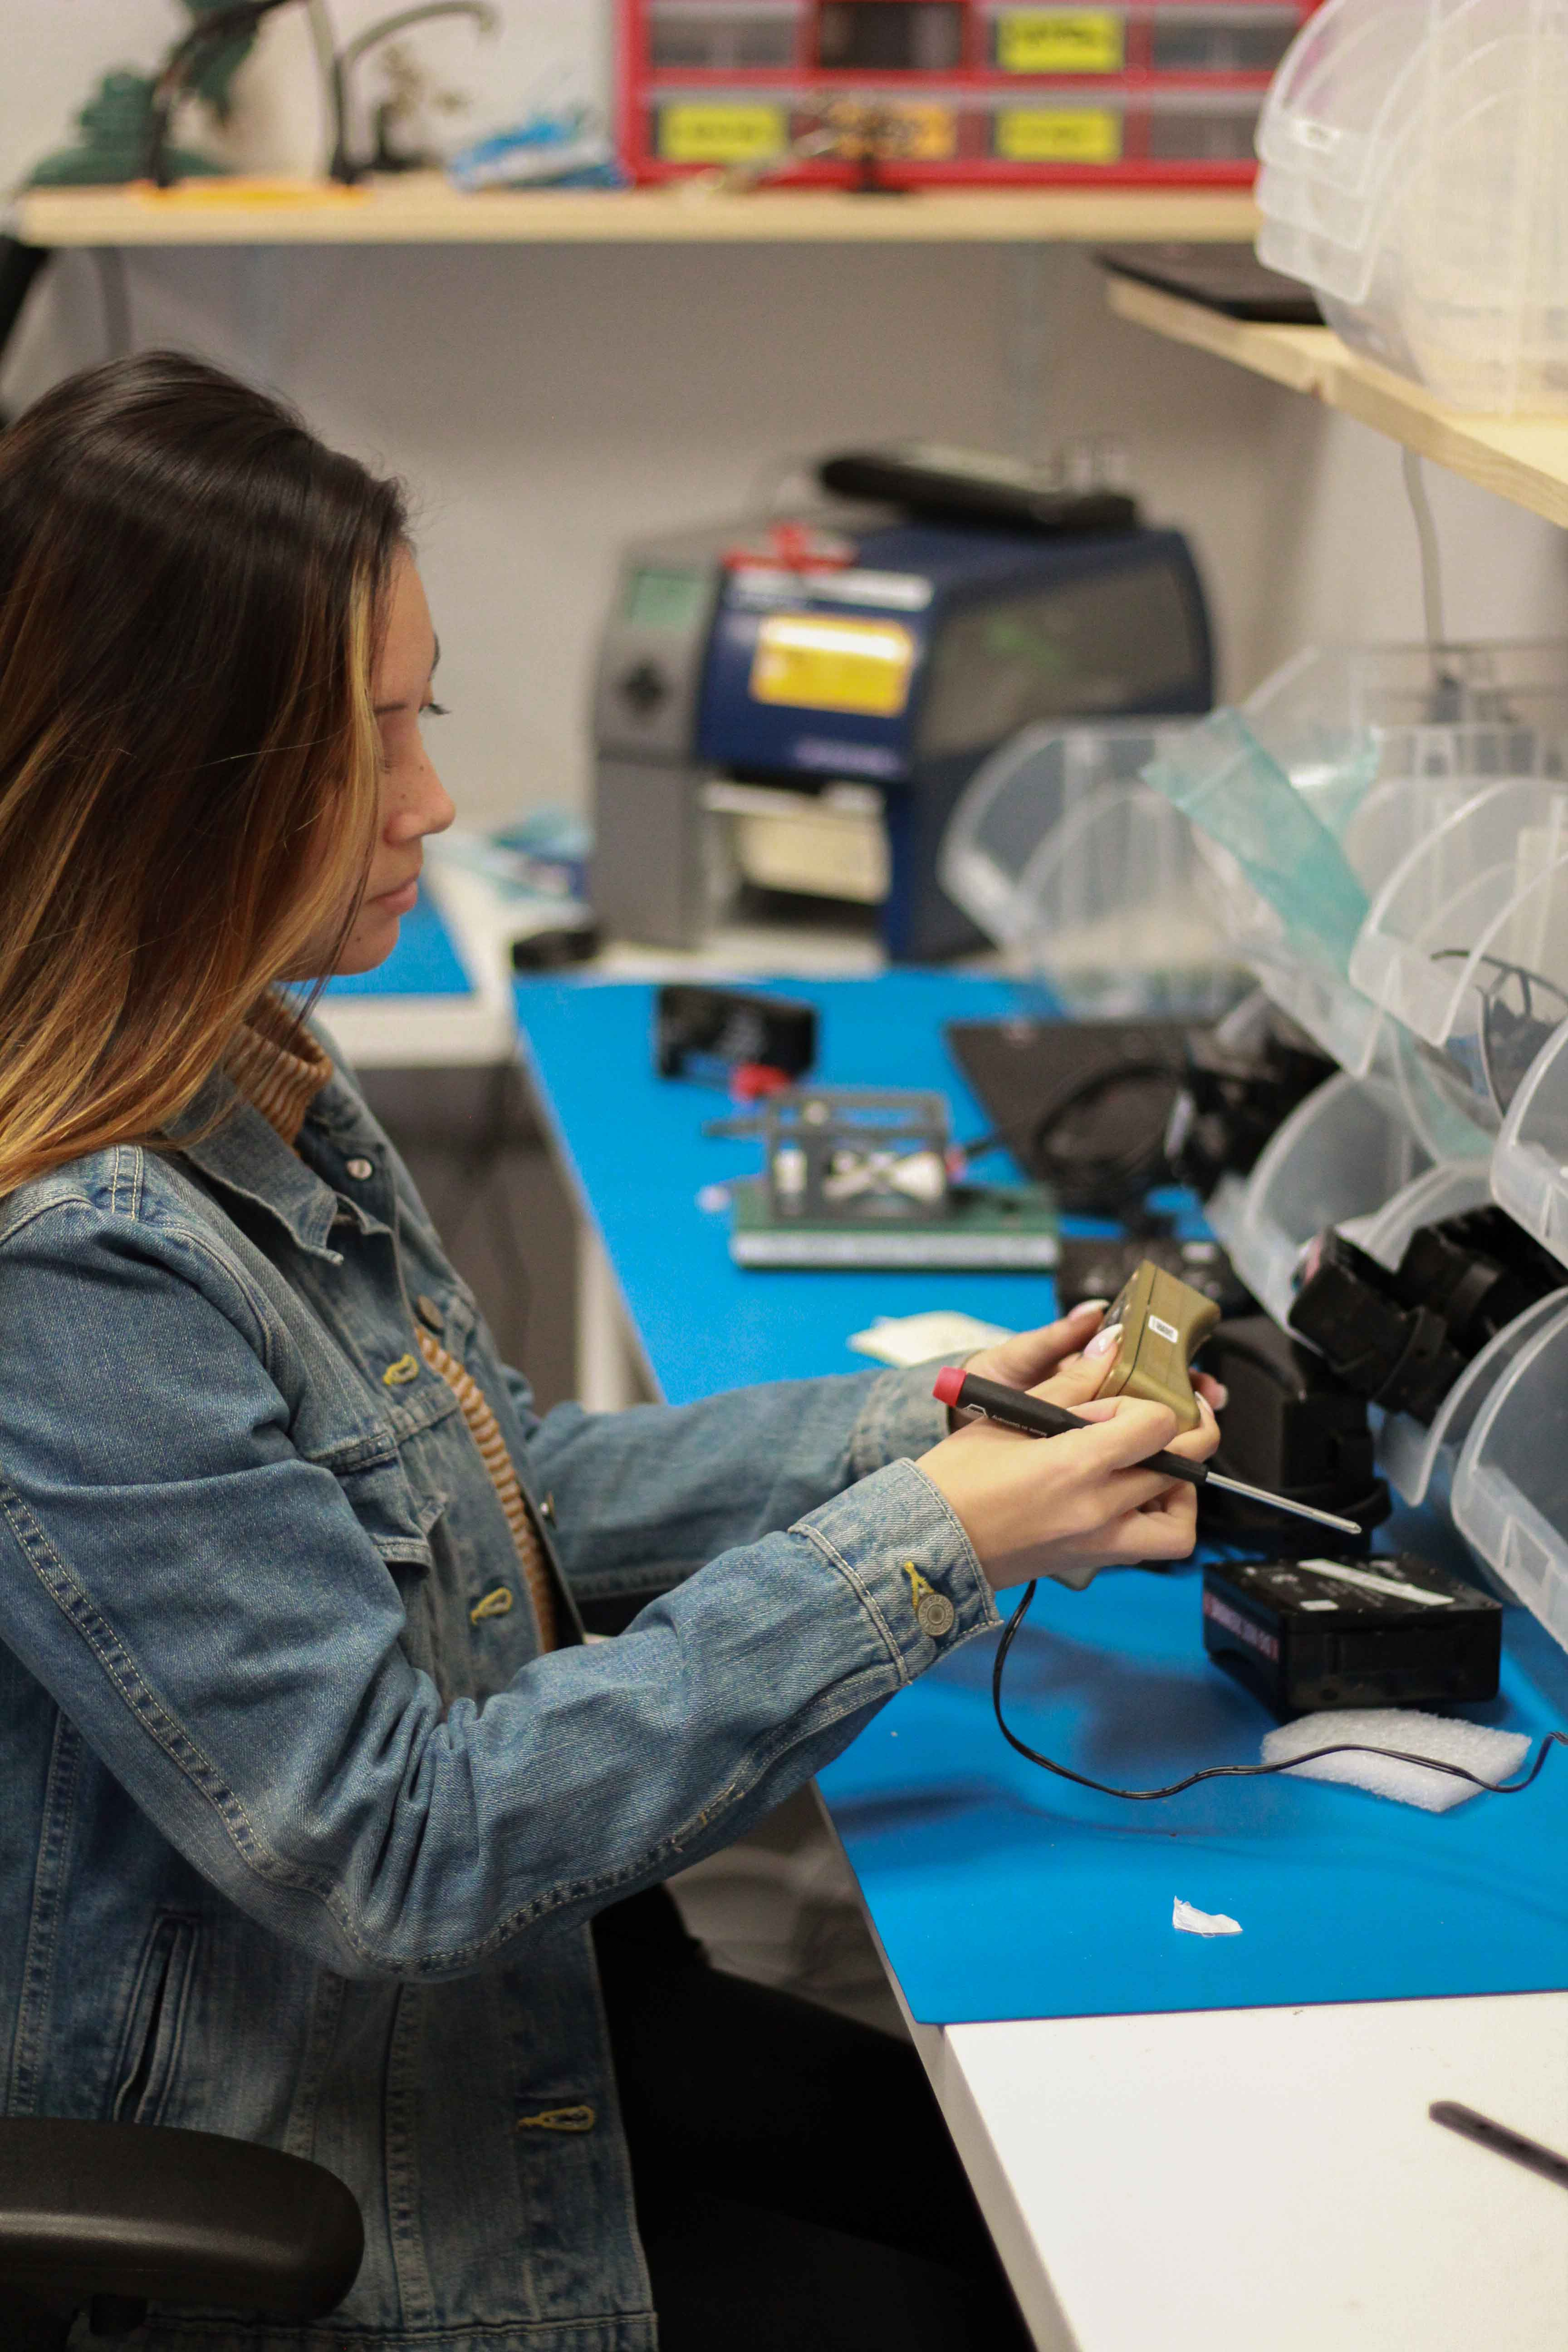 Joanna Birns, a Cal Poly student and customer success representative at startup Flume Inc., works on one of the startup's products in the HotHouse Annex.